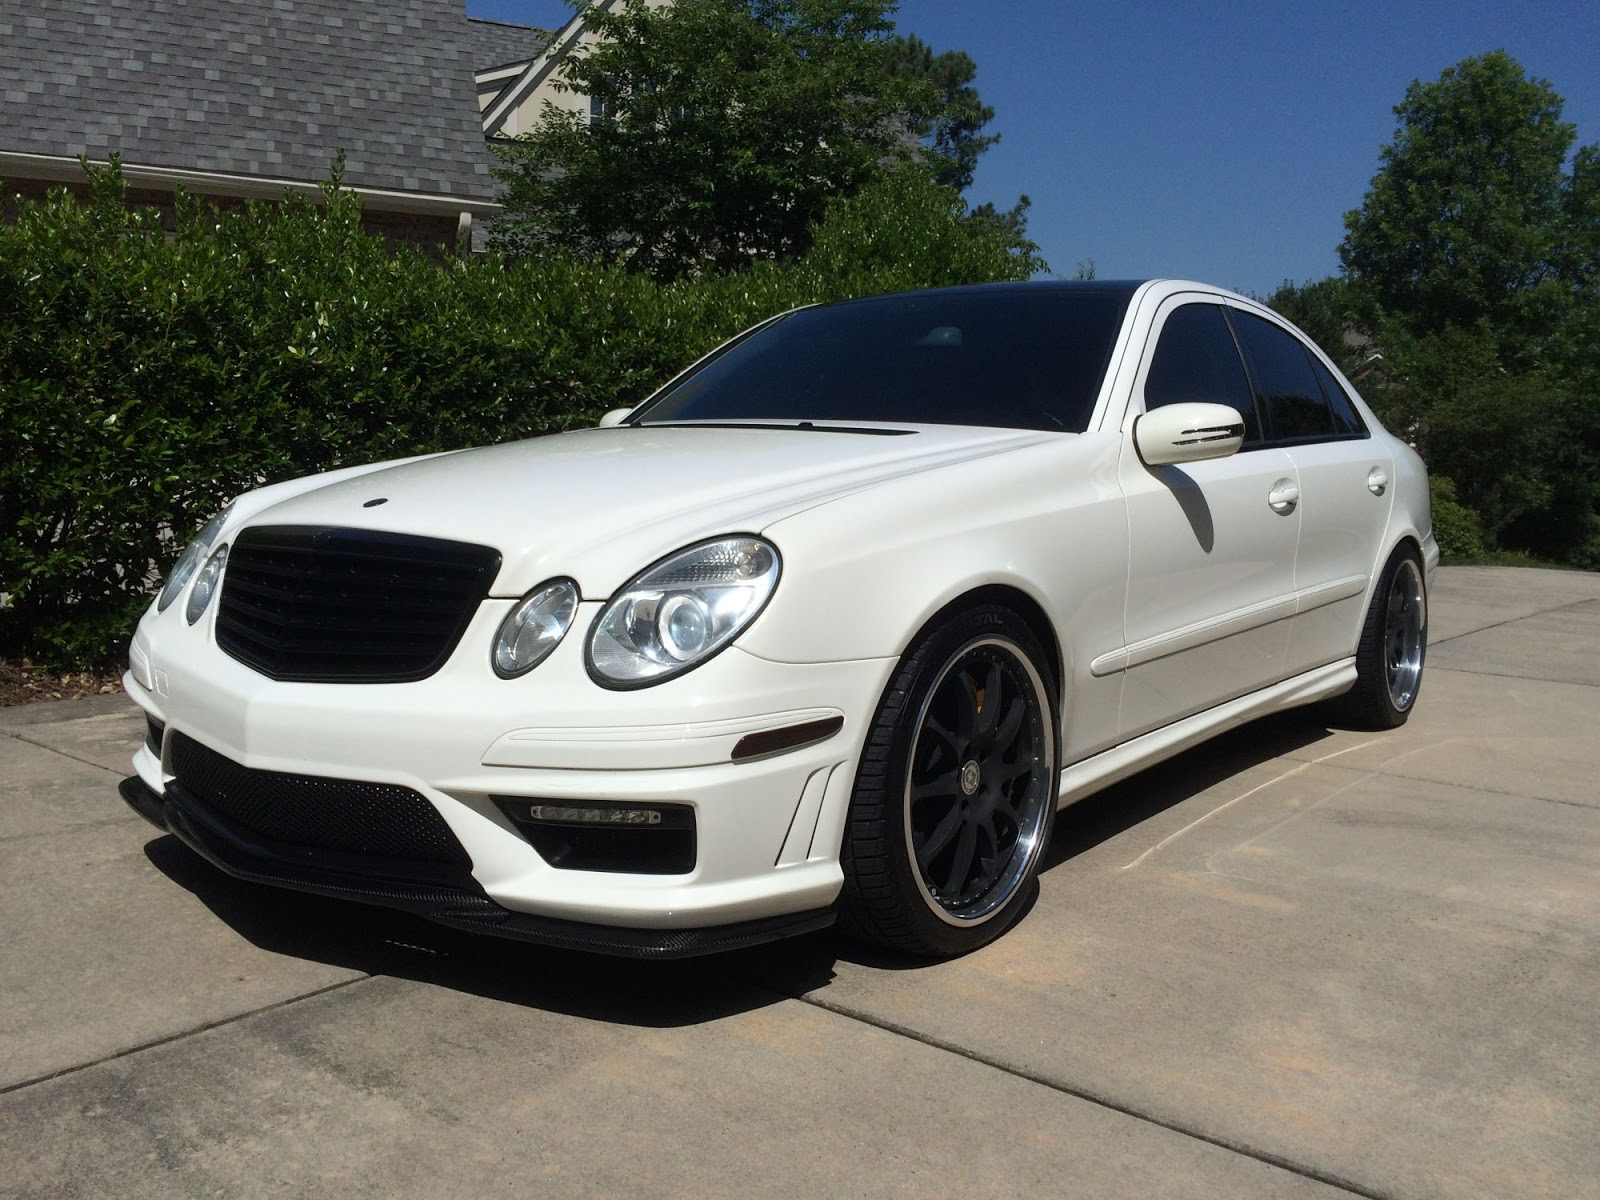 2004 mercedes benz w211 e55 amg on hre performance wheels